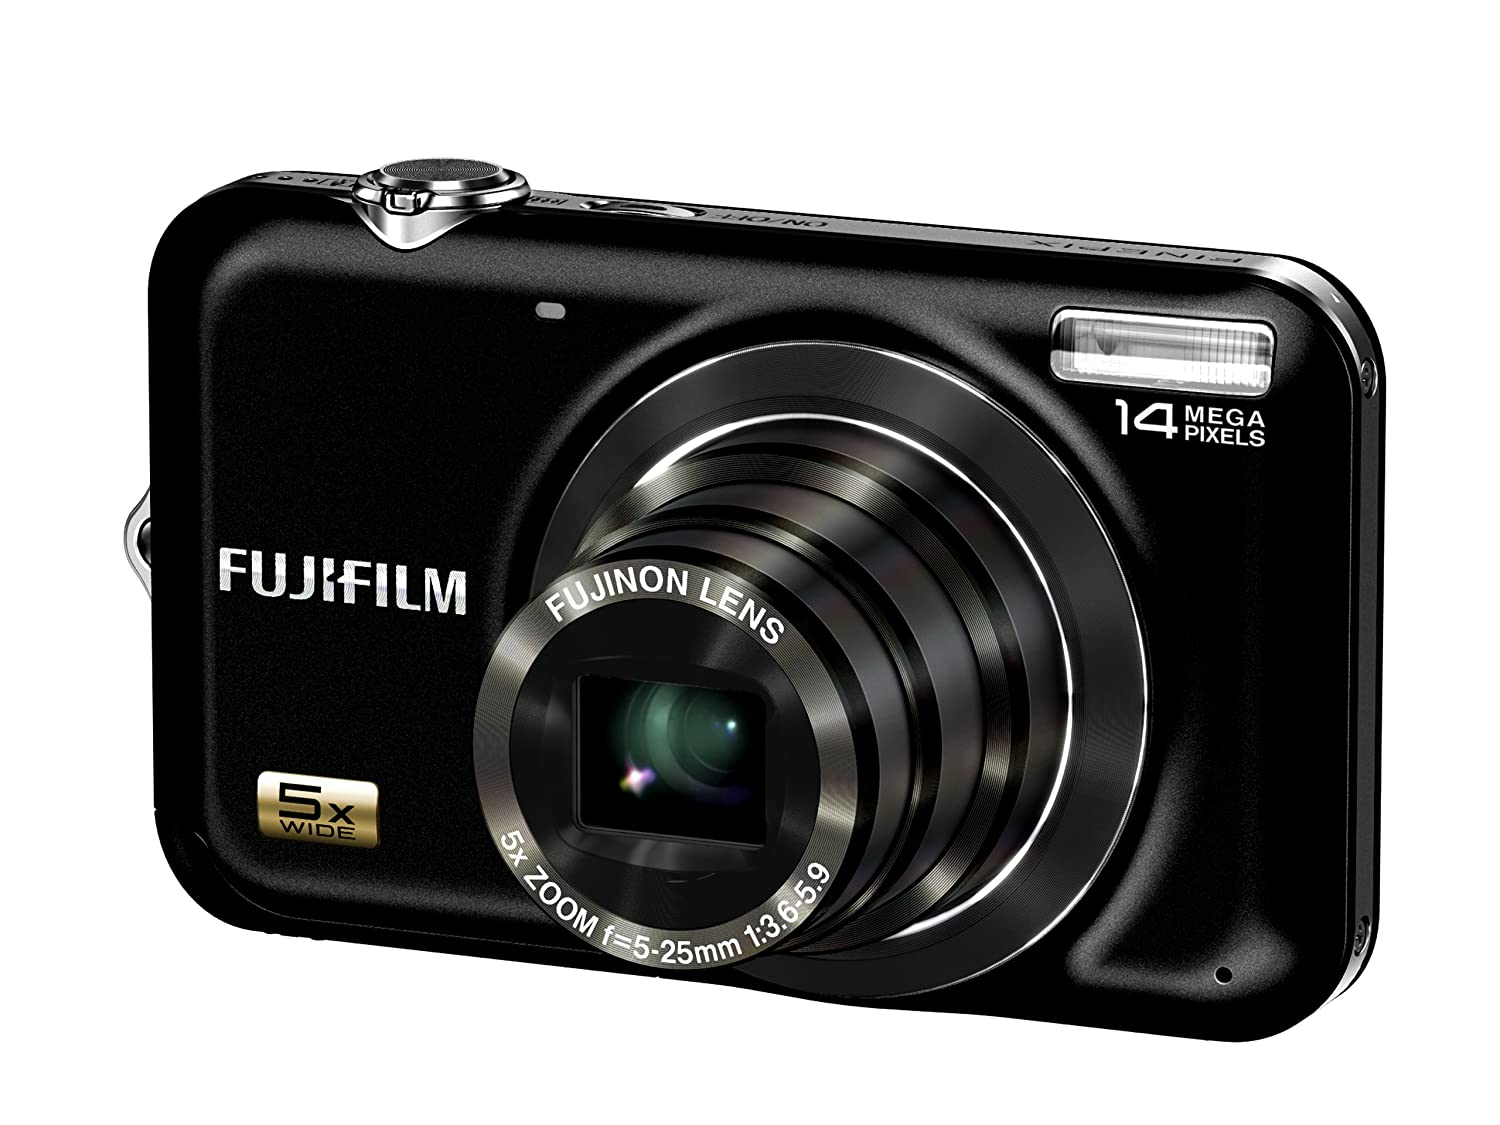 Amazon.com : Fujifilm FinePix JX250 14 MP Digital Camera with 5x Wide Angle  Optical Zoom and 2.7-Inch LCD : Point And Shoot Digital Cameras : Camera &  Photo